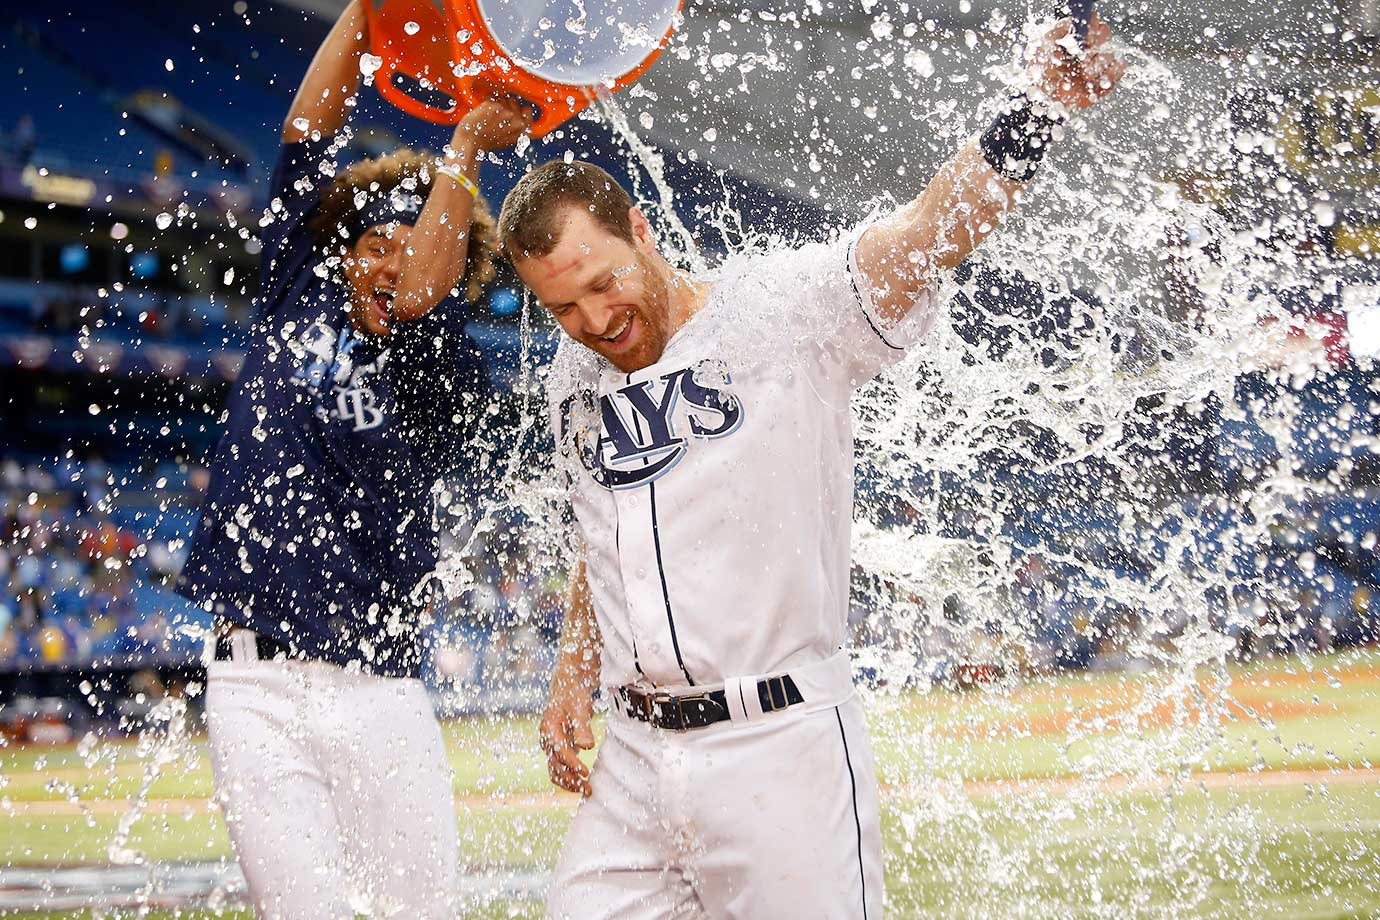 Second baseman Logan Forsythe of Tampa Bay is doused with ice and water by pitcher Chris Archer following the Rays' 3-2 win over Toronto.